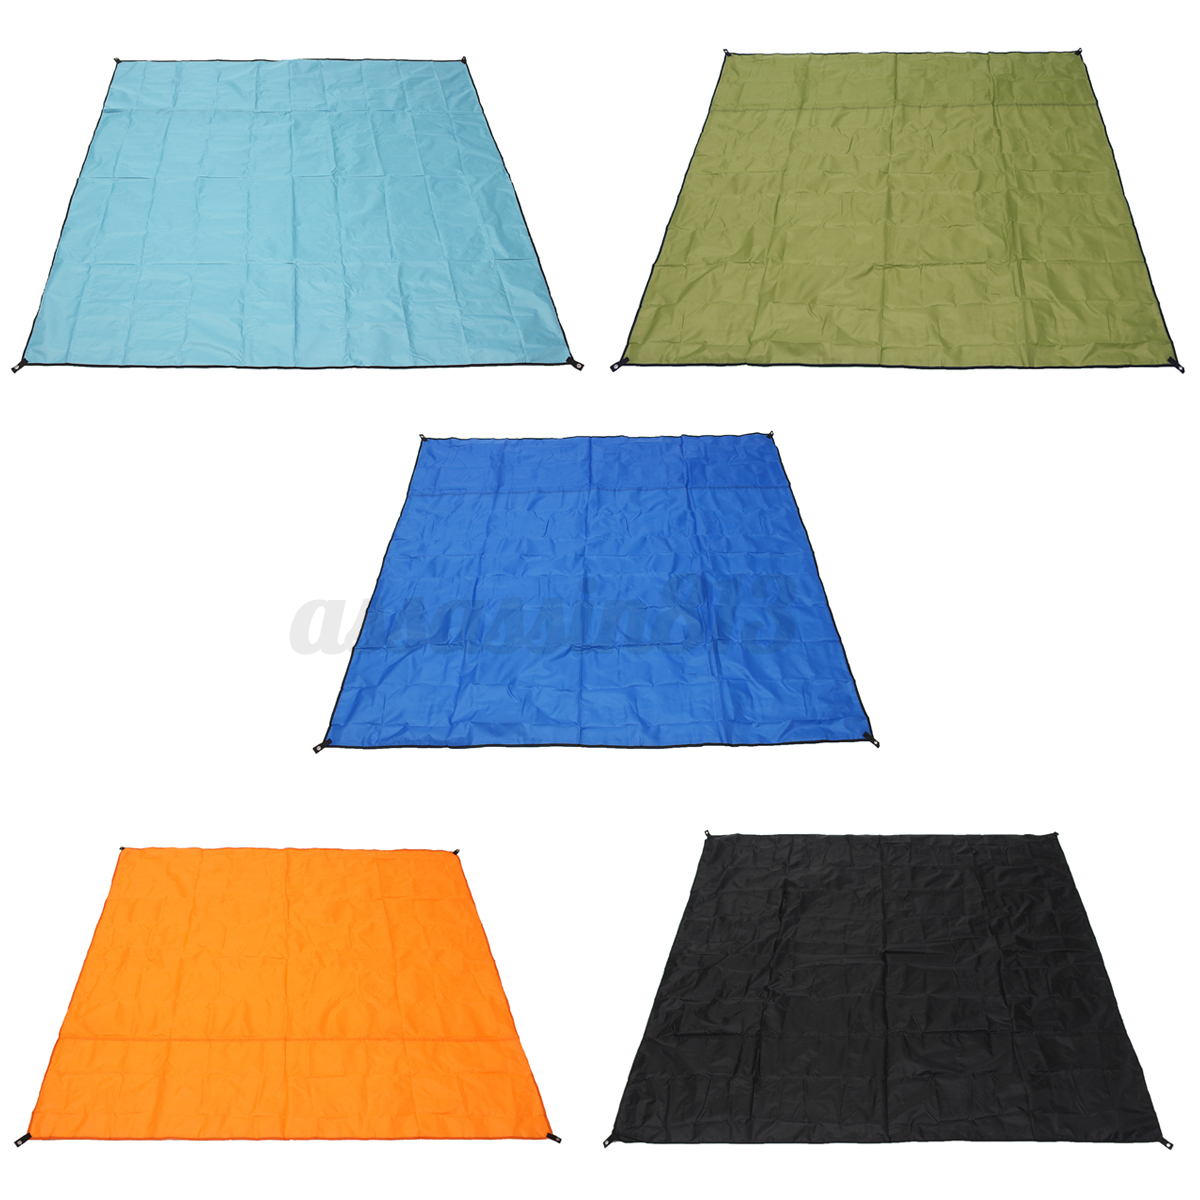 Waterproof Foldable Beach Picnic Outdoor Garden Mat Free